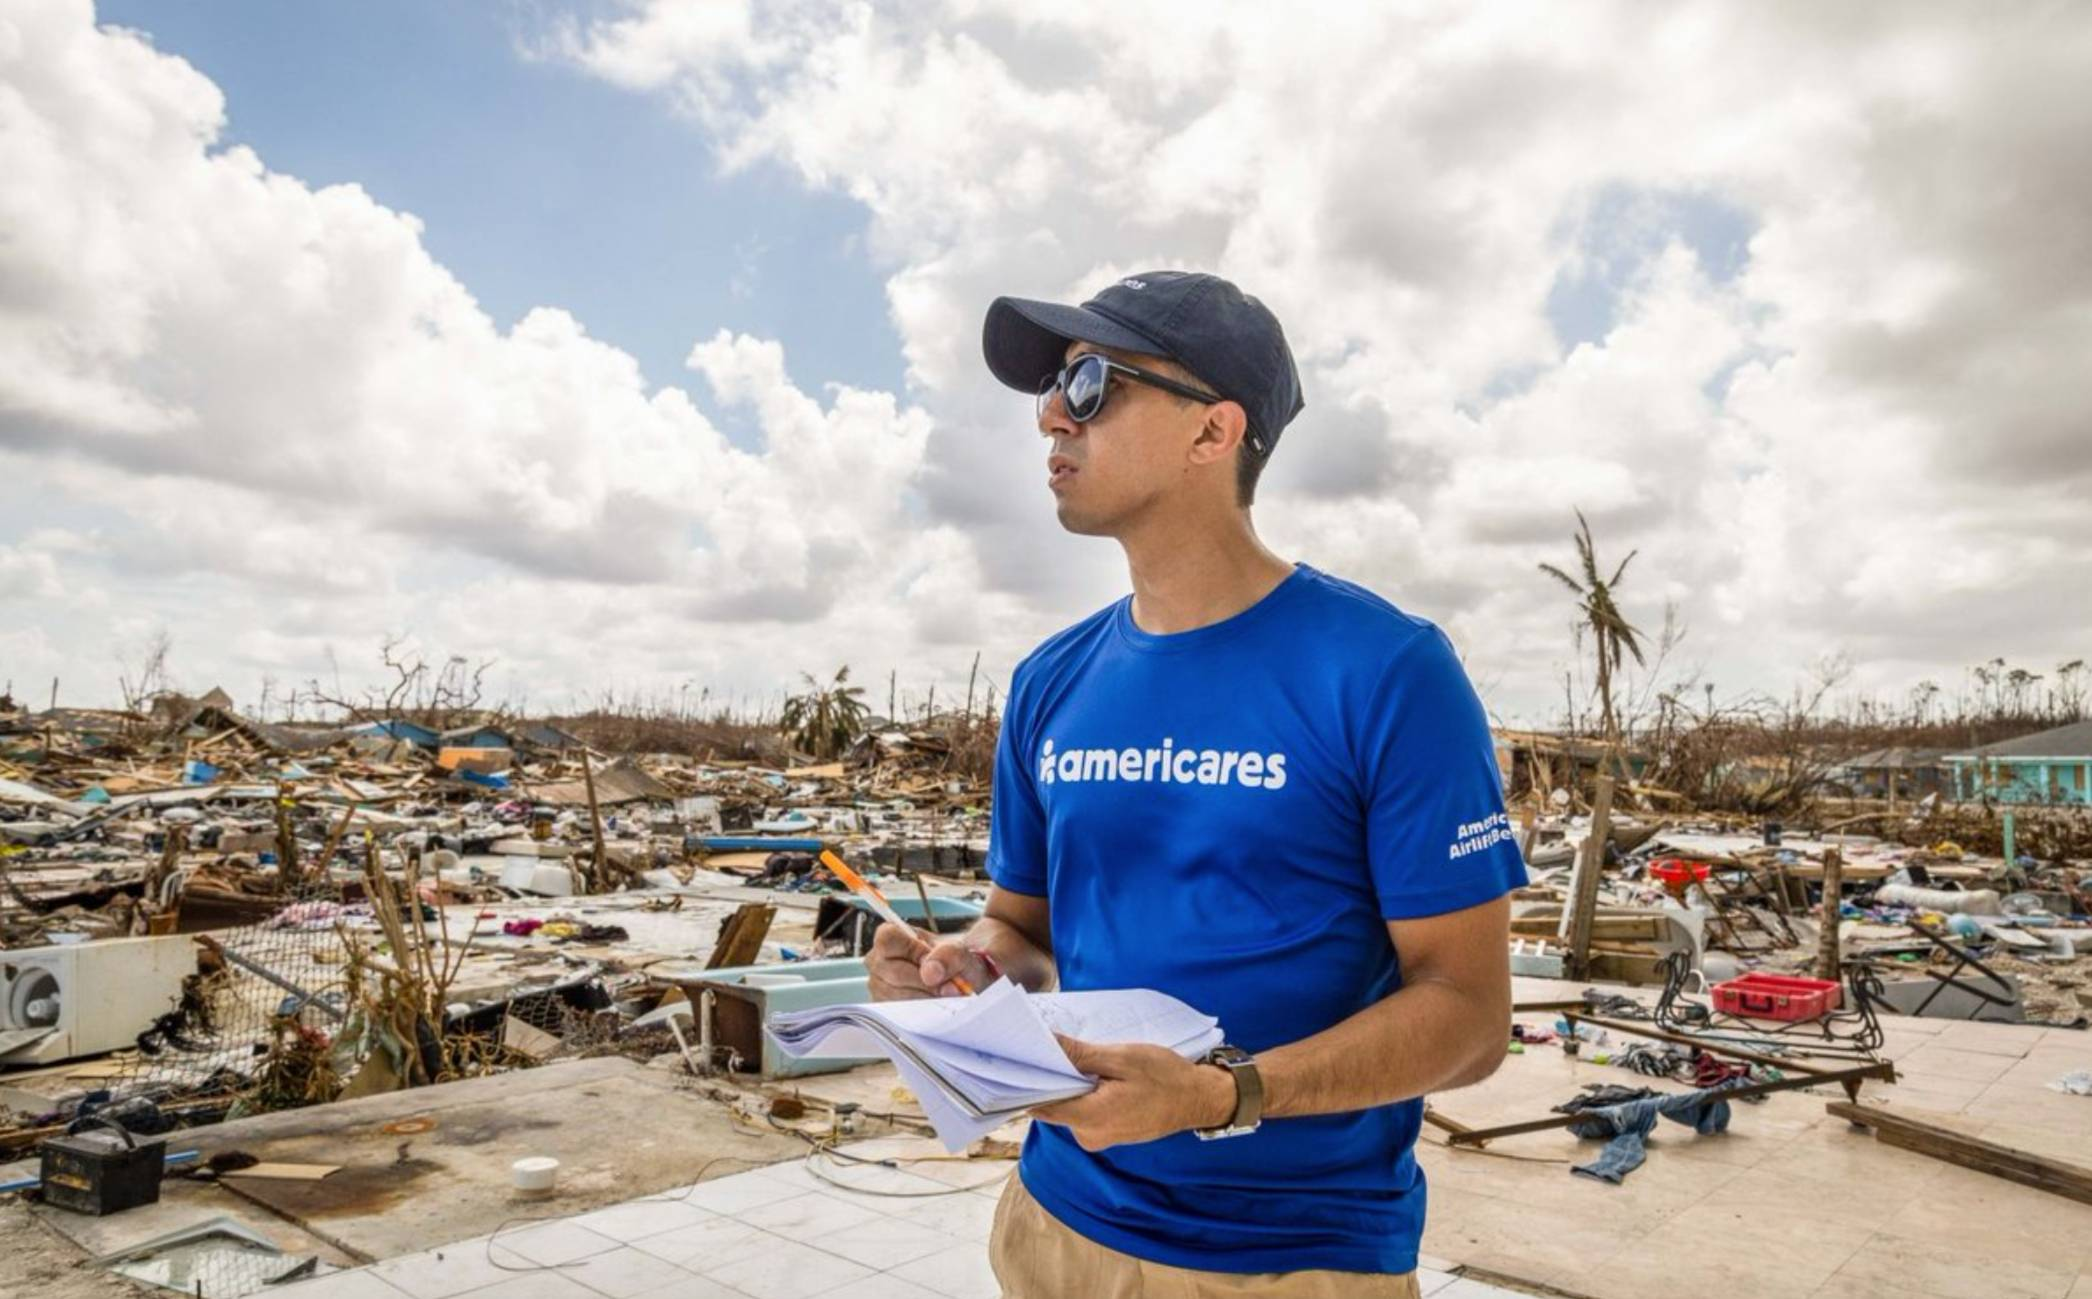 PVH Corp. links with Americares for a global disaster relief program